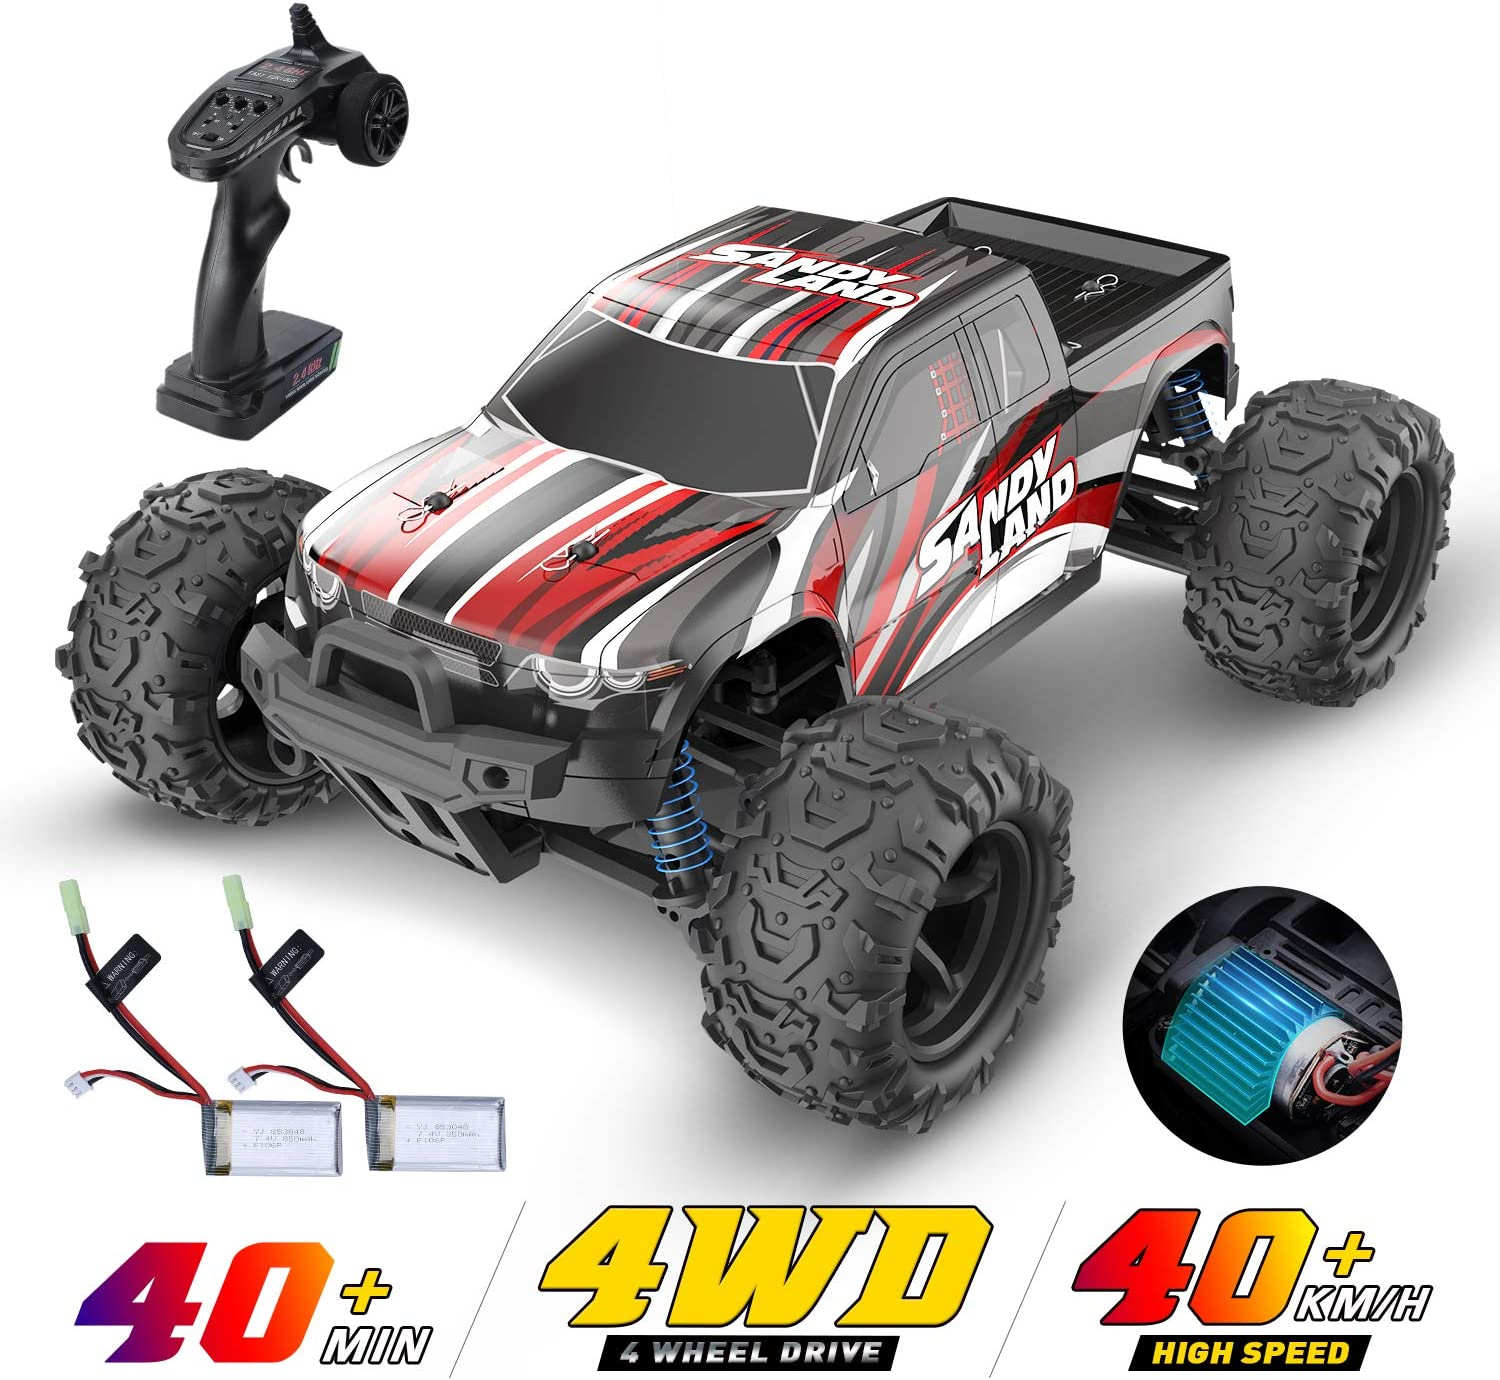 Amazon Com Deerc Rc Cars 9300 High Speed Remote Control Car For Kids Adults 1 18 Scale 30 Mph 4wd Off Road Monster Trucks 2 4ghz All Terrain Toy Trucks With 2 Rechargeable Battery 40 Min Play